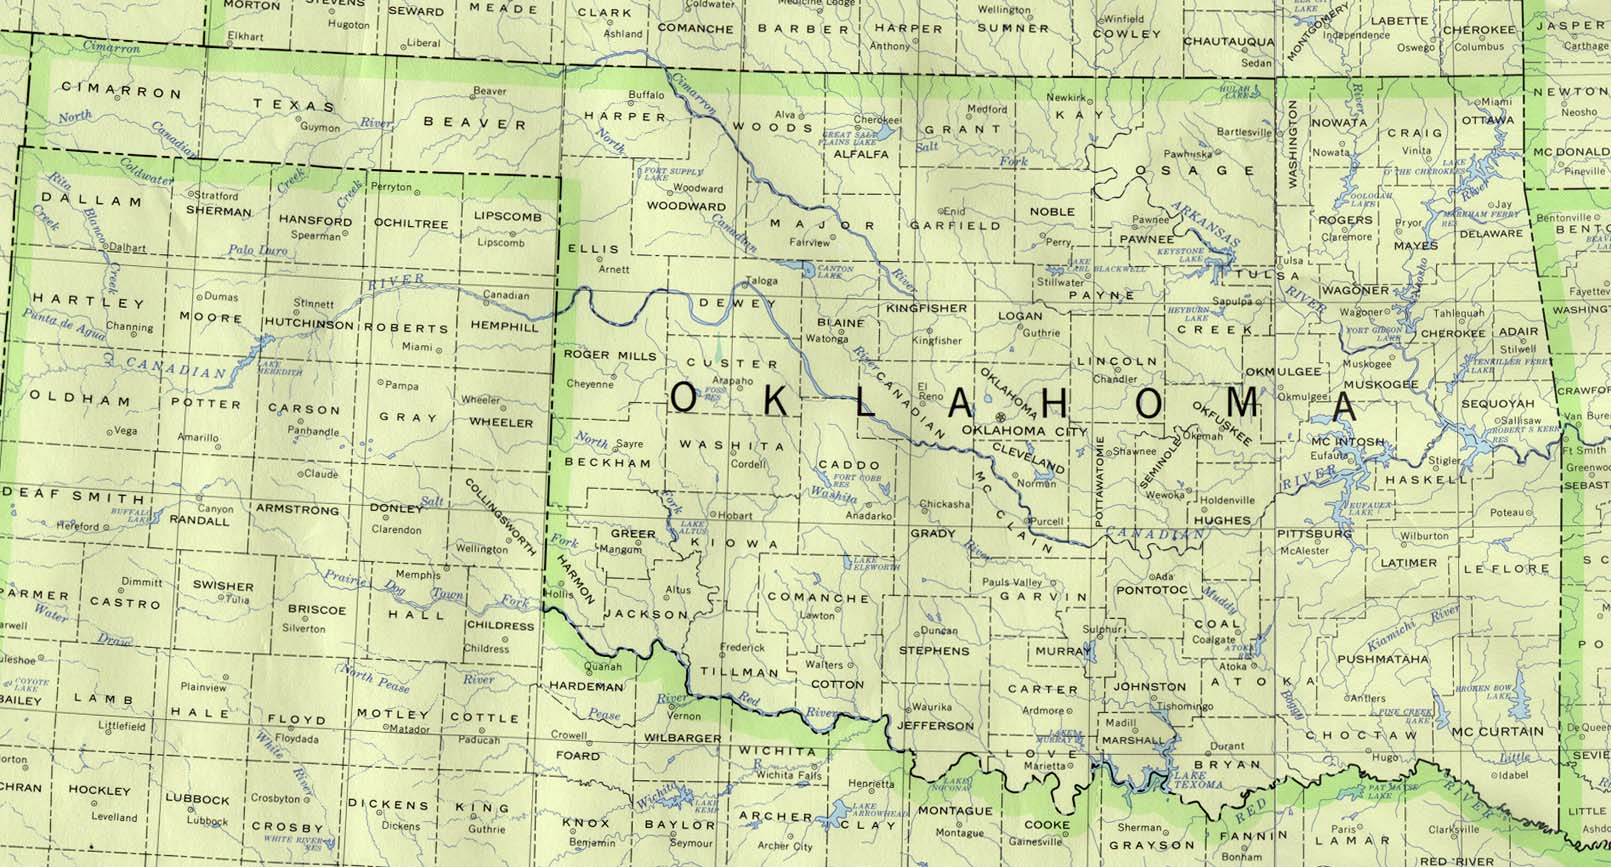 State Of Oklahoma Mapsof Interstate Highways Cities Typography - Oklahoma road map